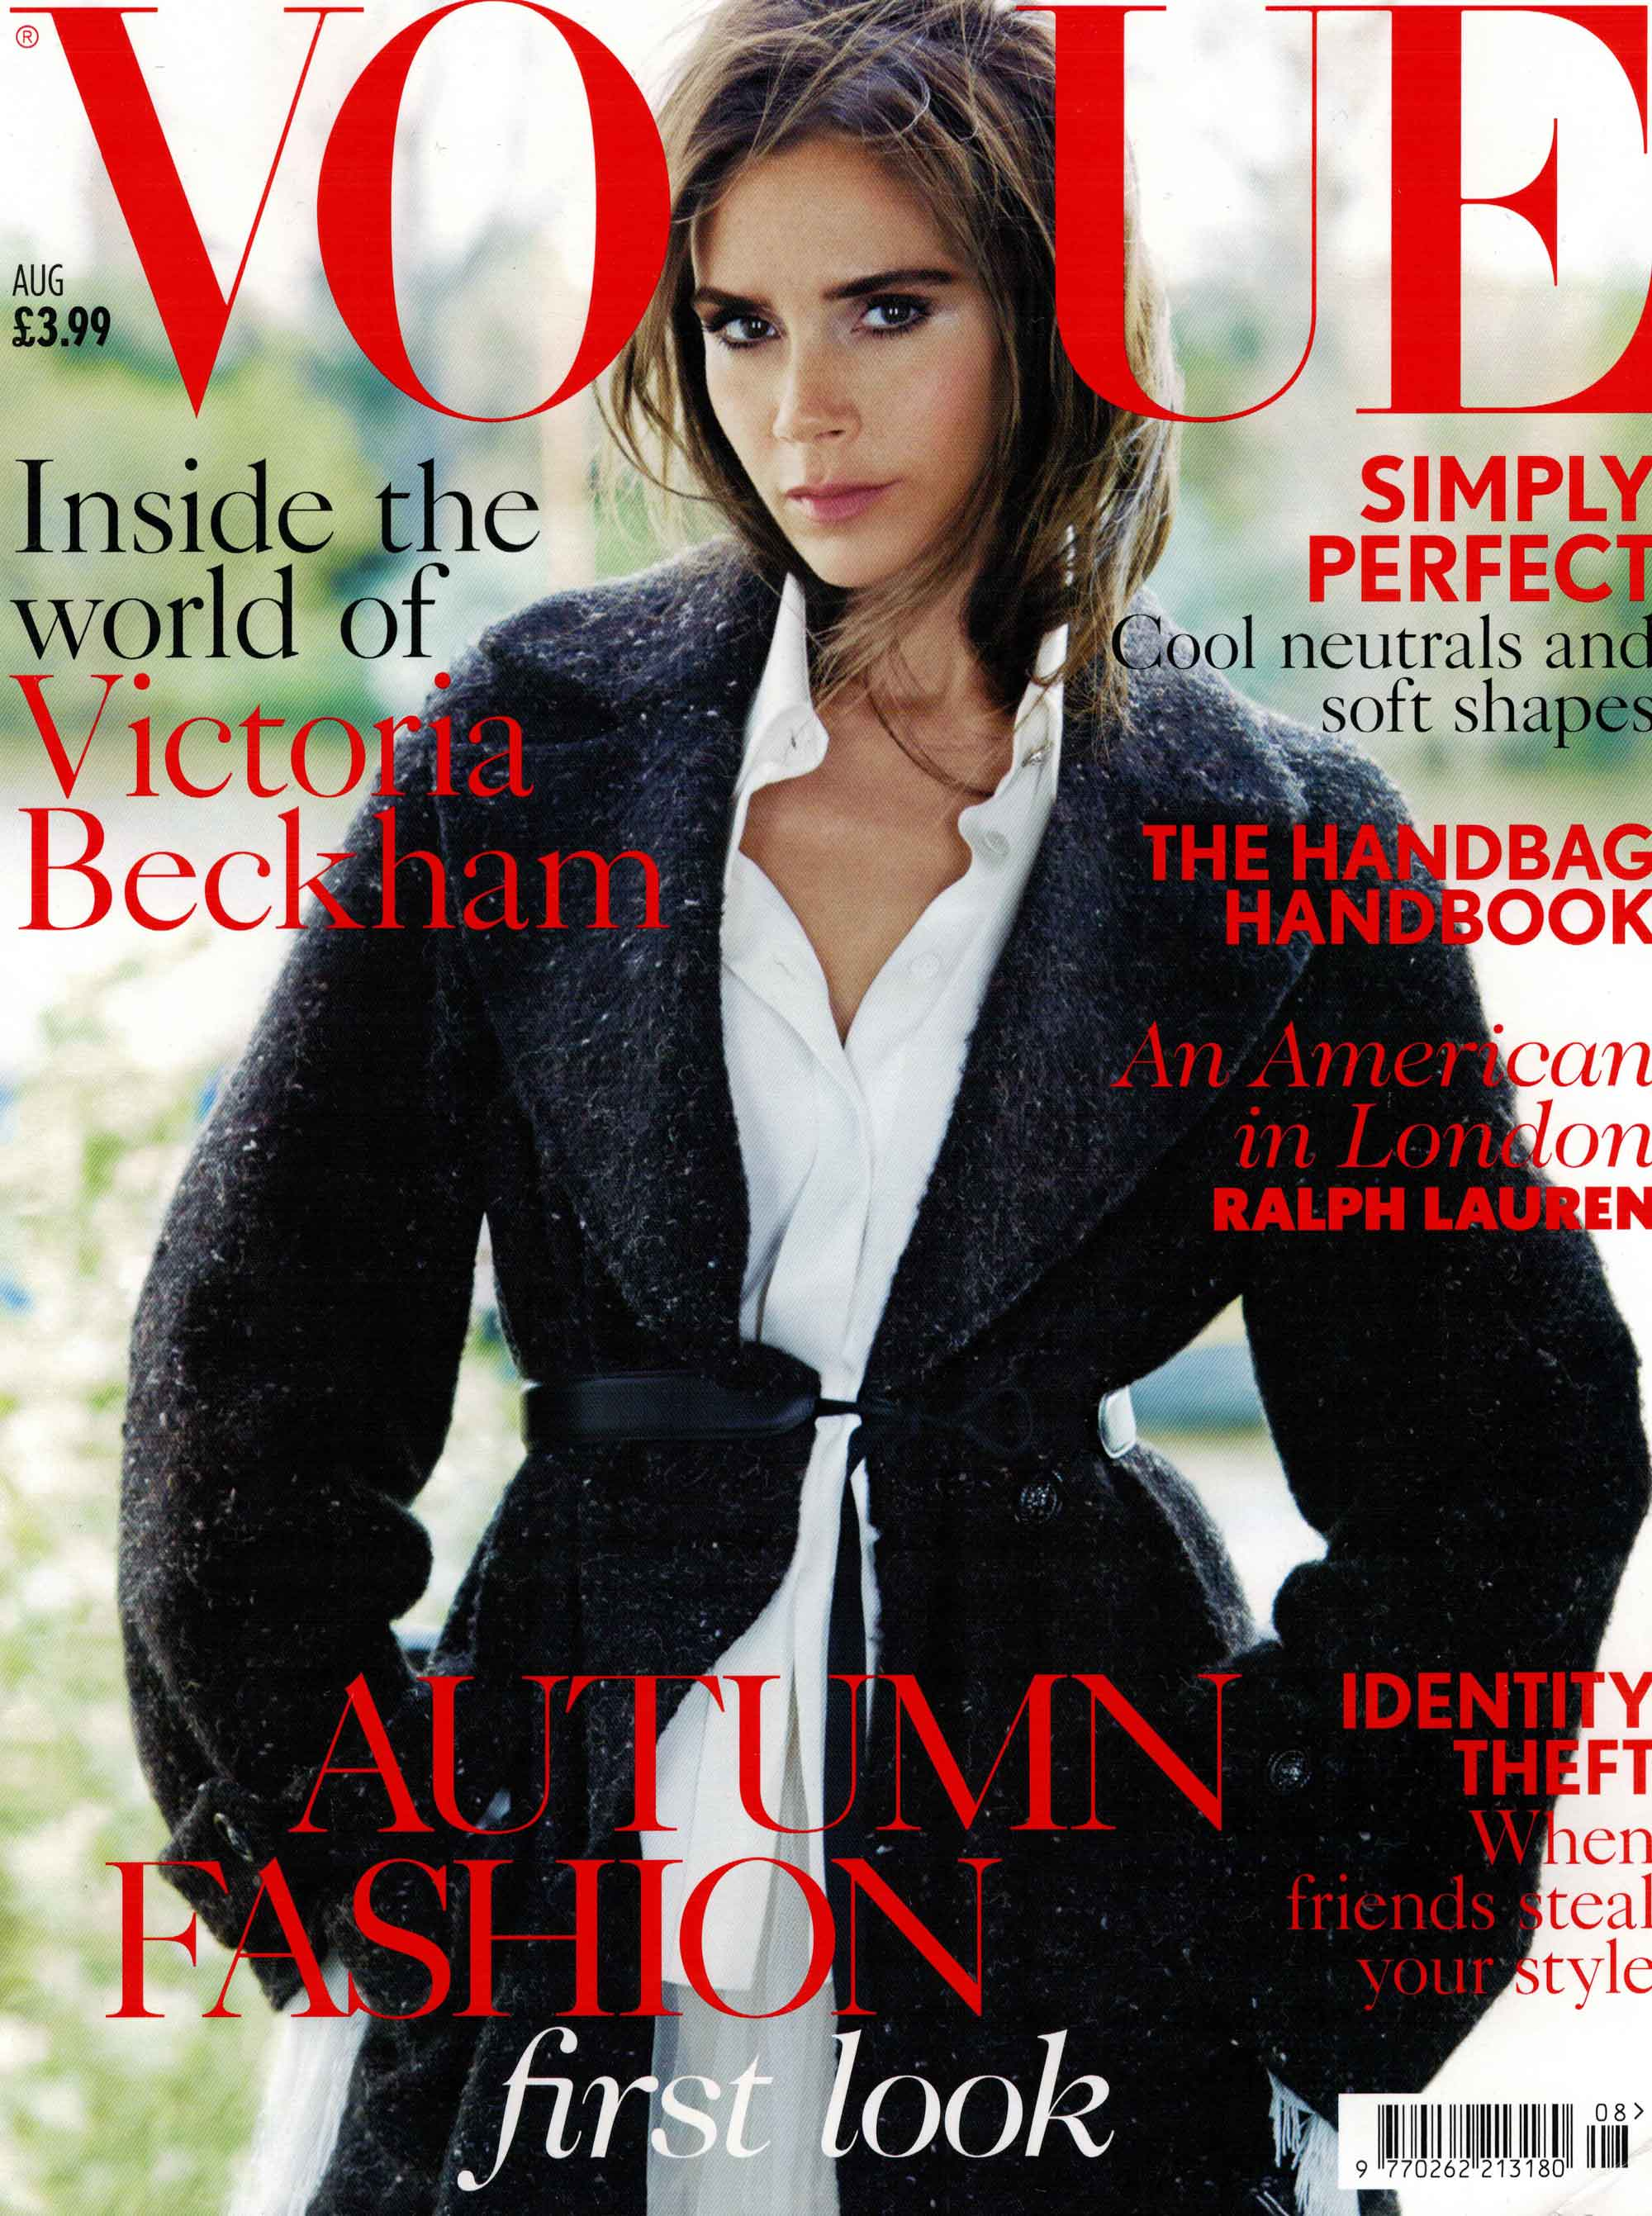 Vogue-Aug-14-cover